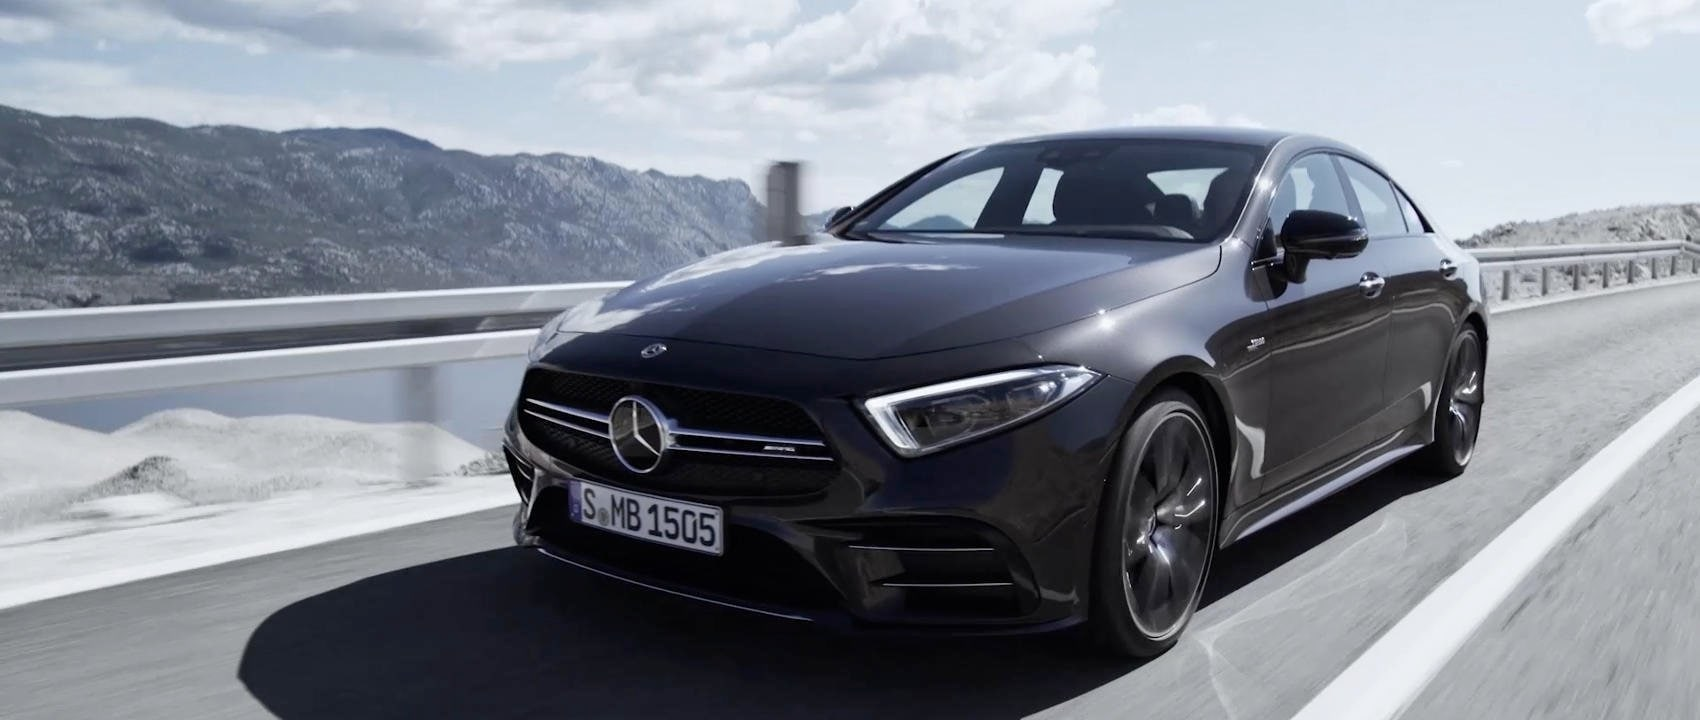 Mercedes-AMG CLS 53 4MATIC+ 2018: World Premiere.